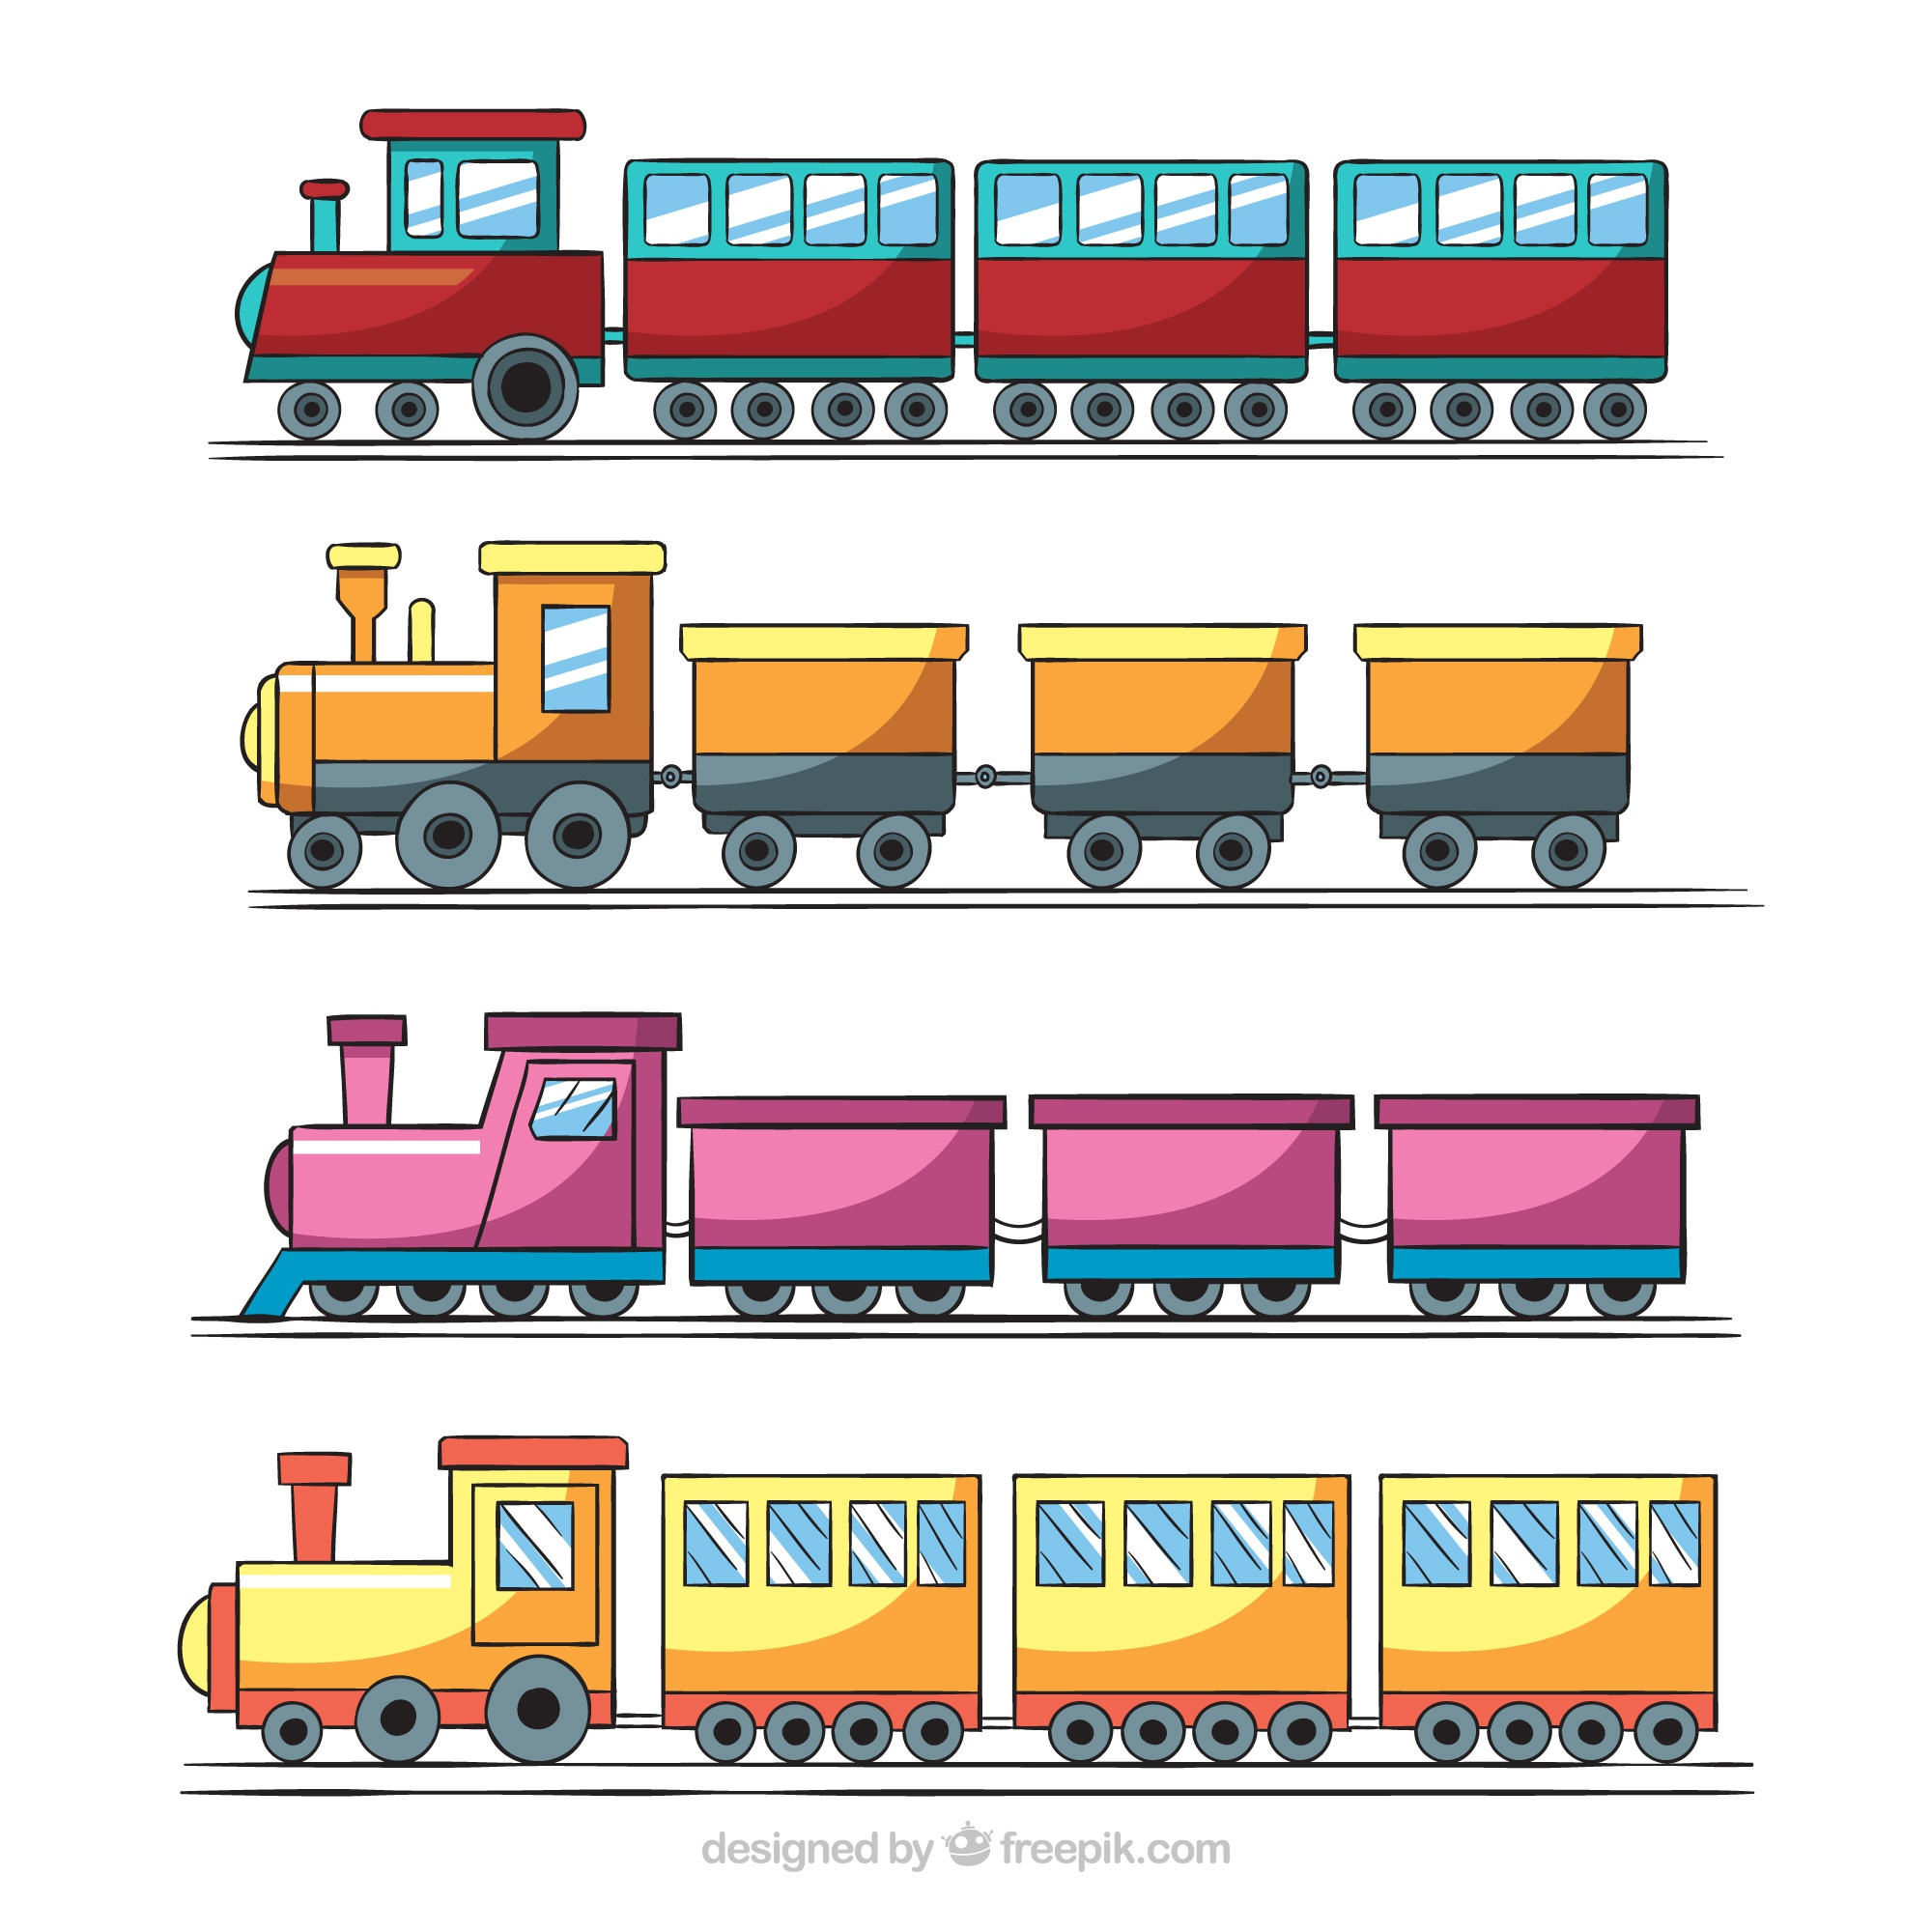 Great collection of four toy trains